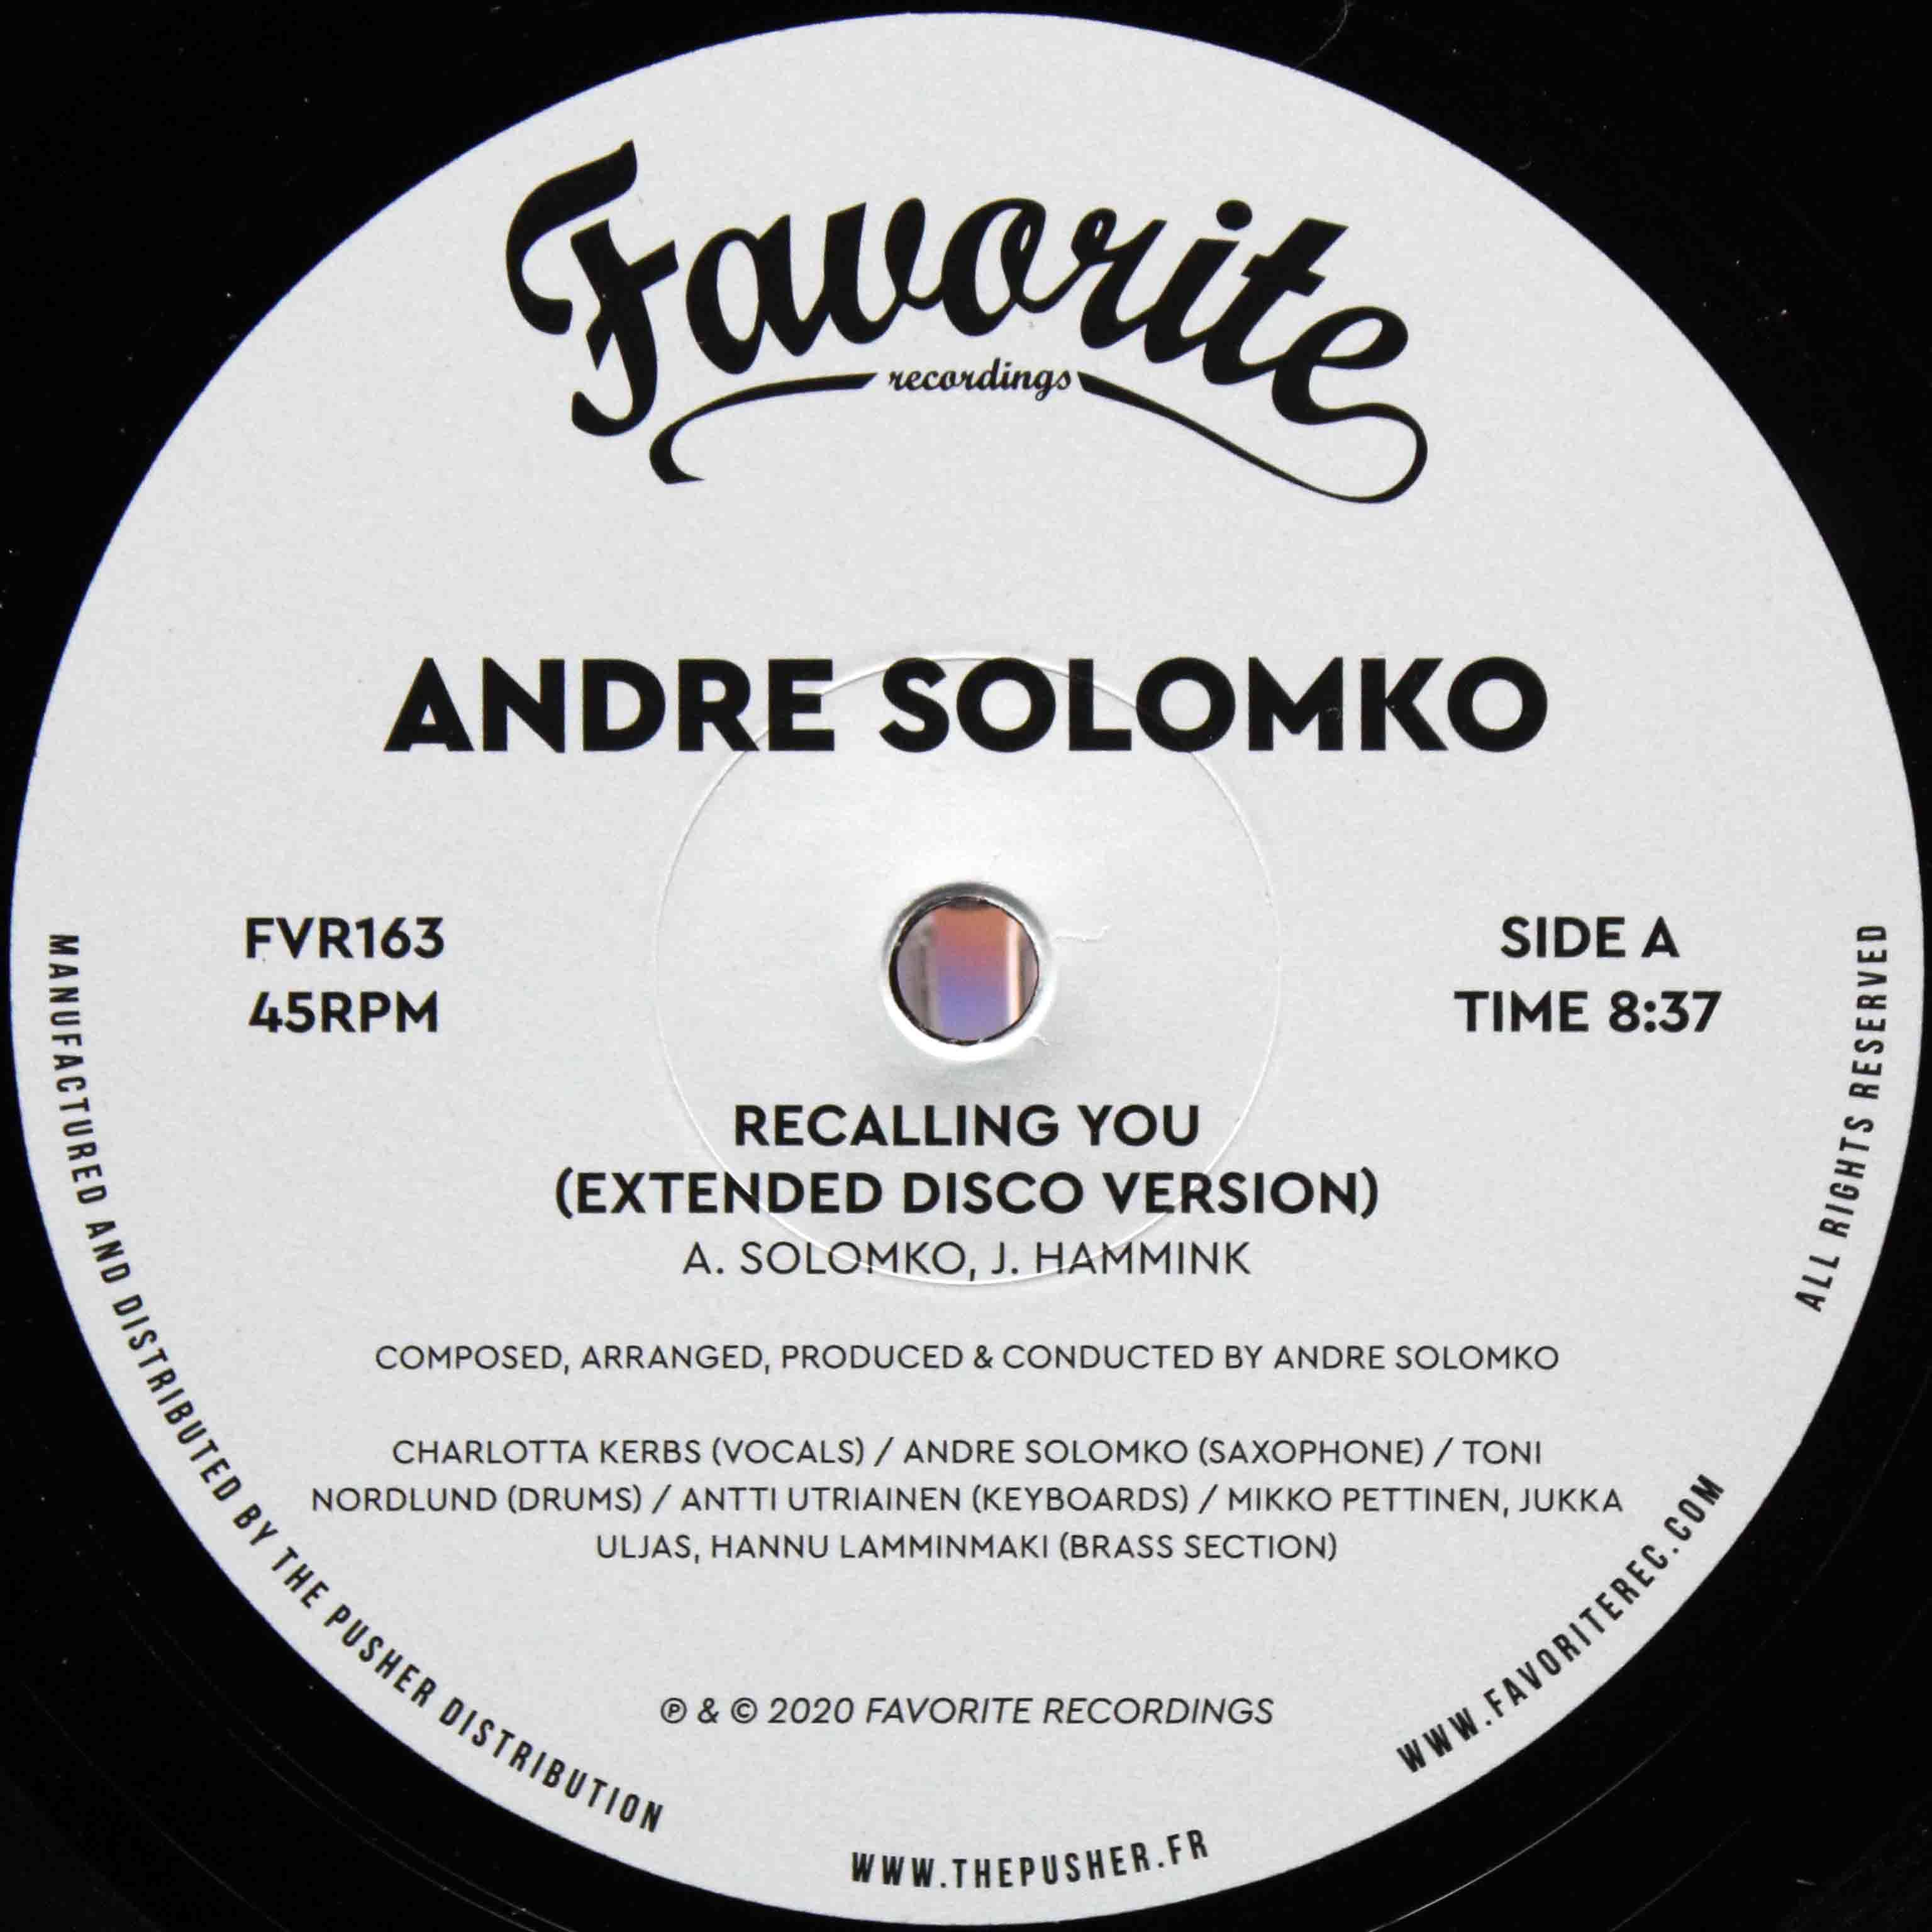 Andre Solomko – Recalling You 03